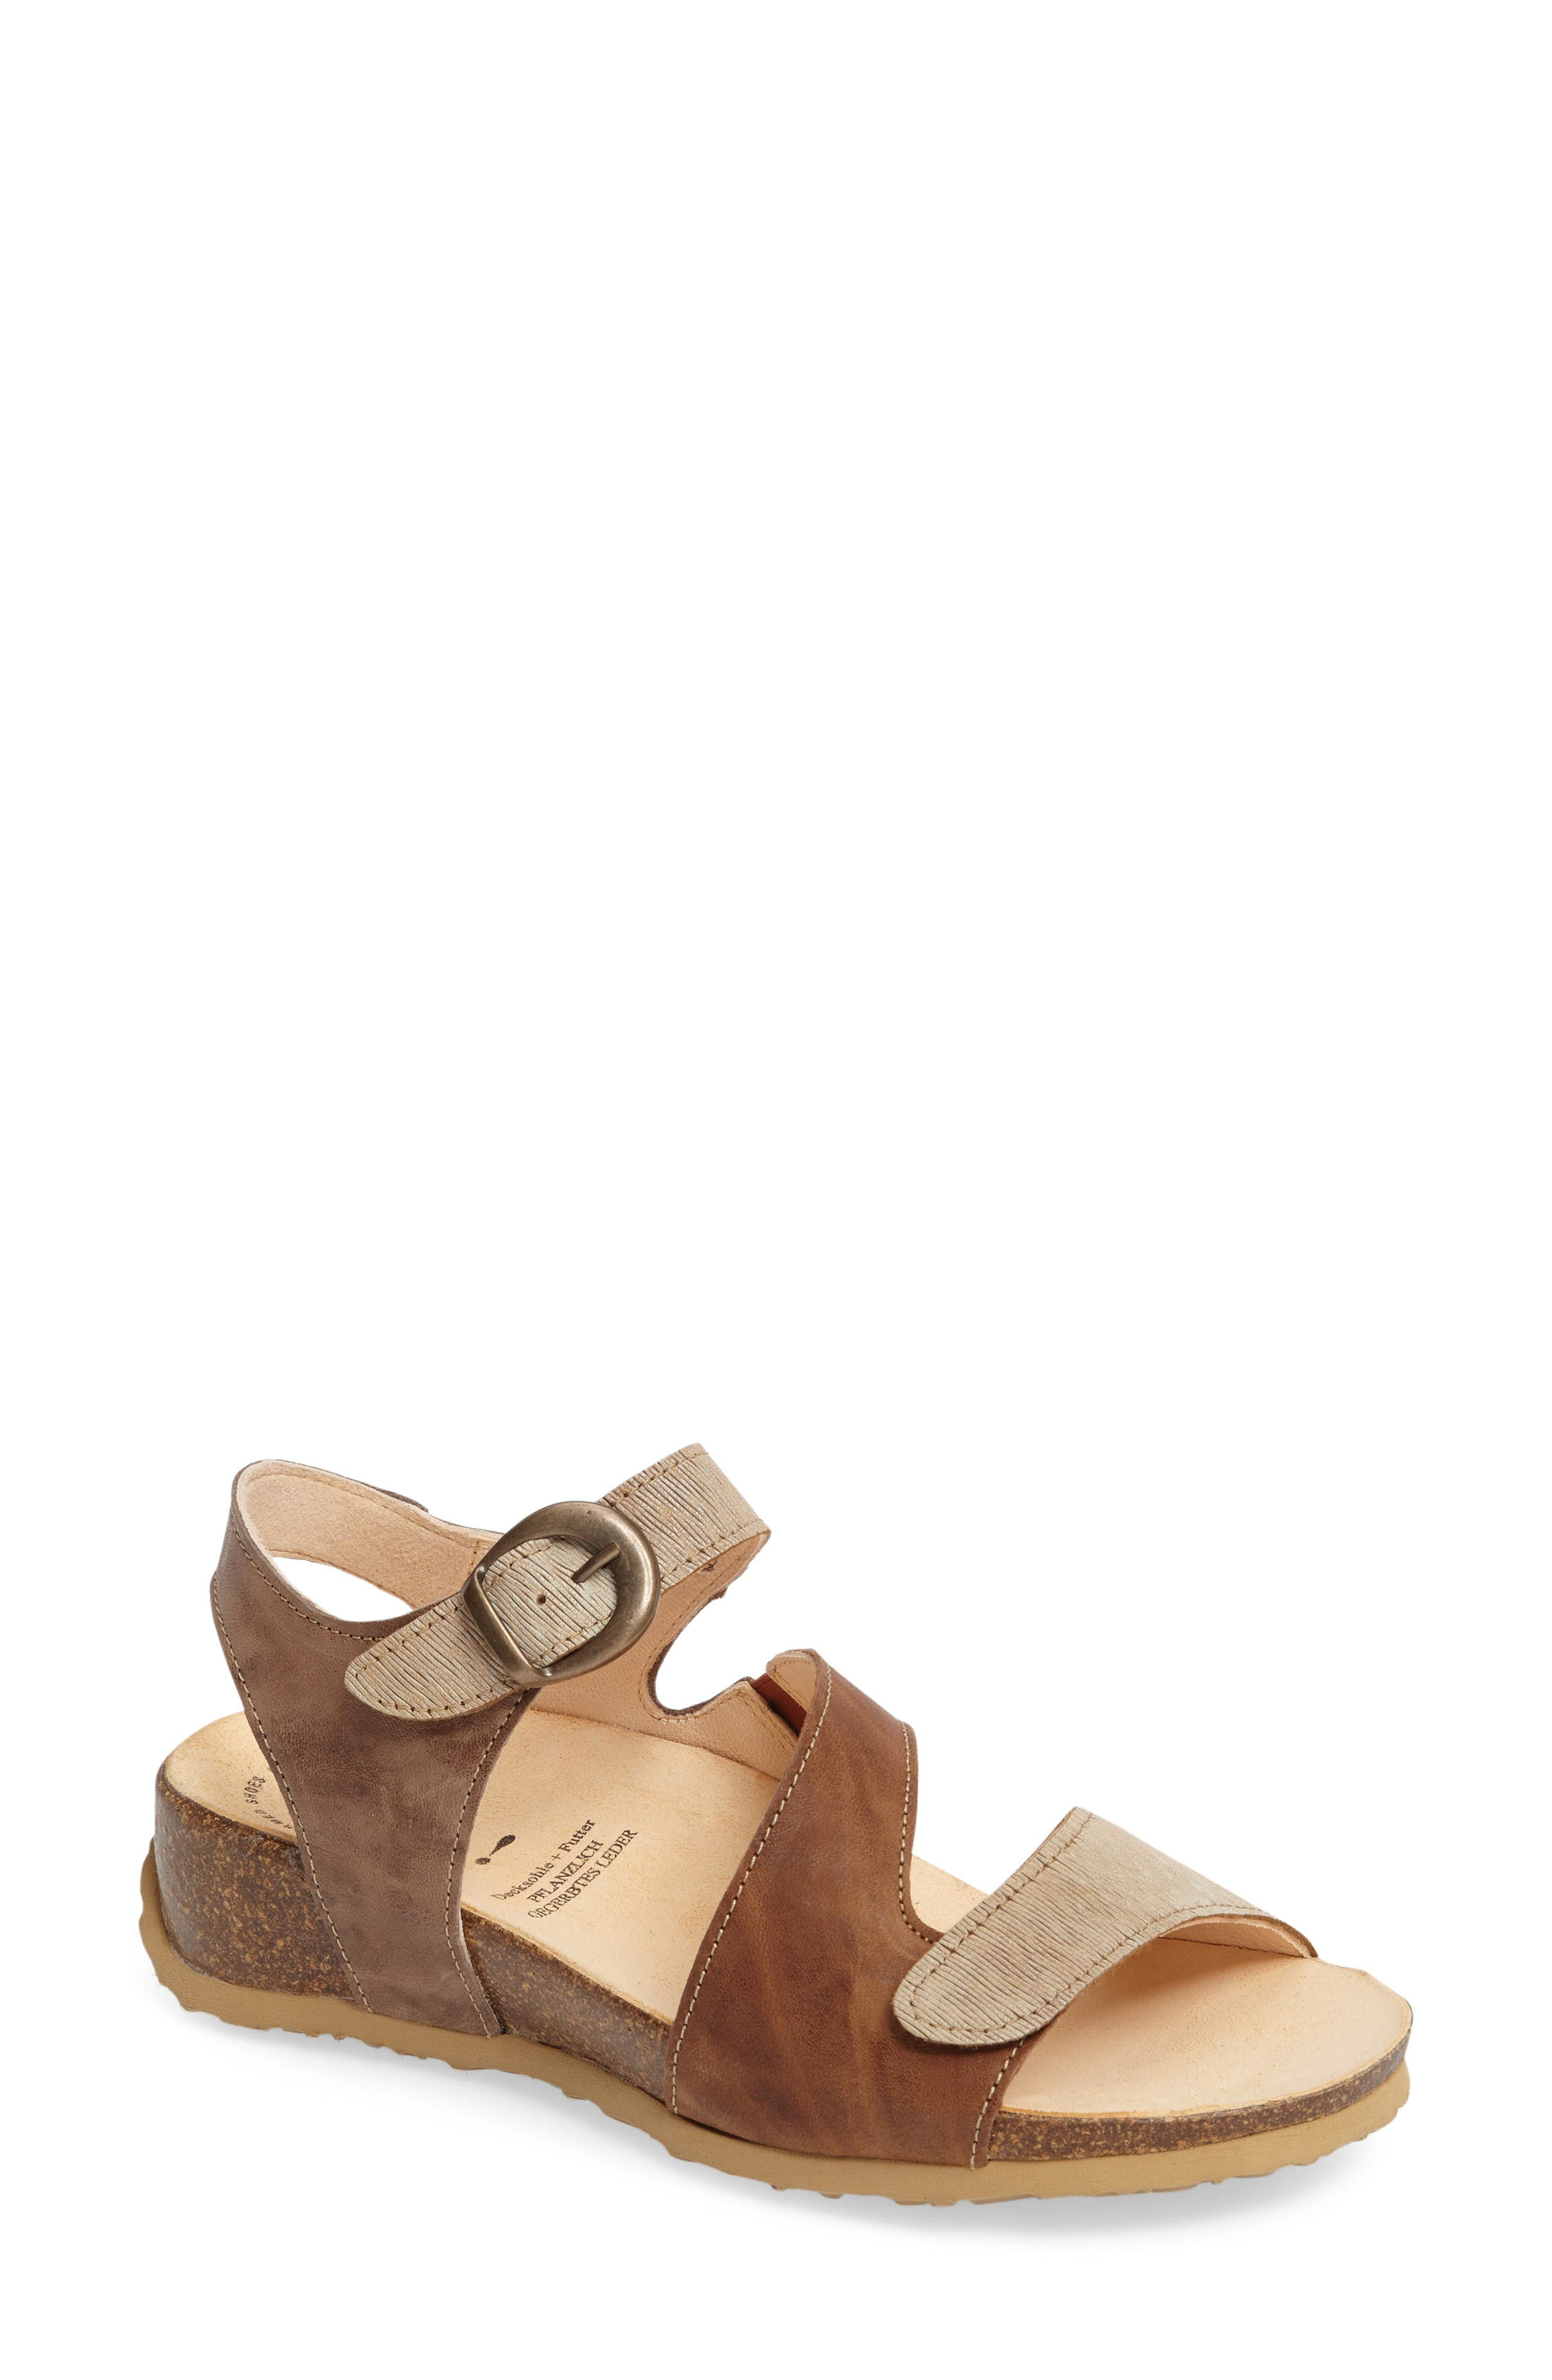 Alternate Image 1 Selected - Think! Mizzi Sandal (Women)